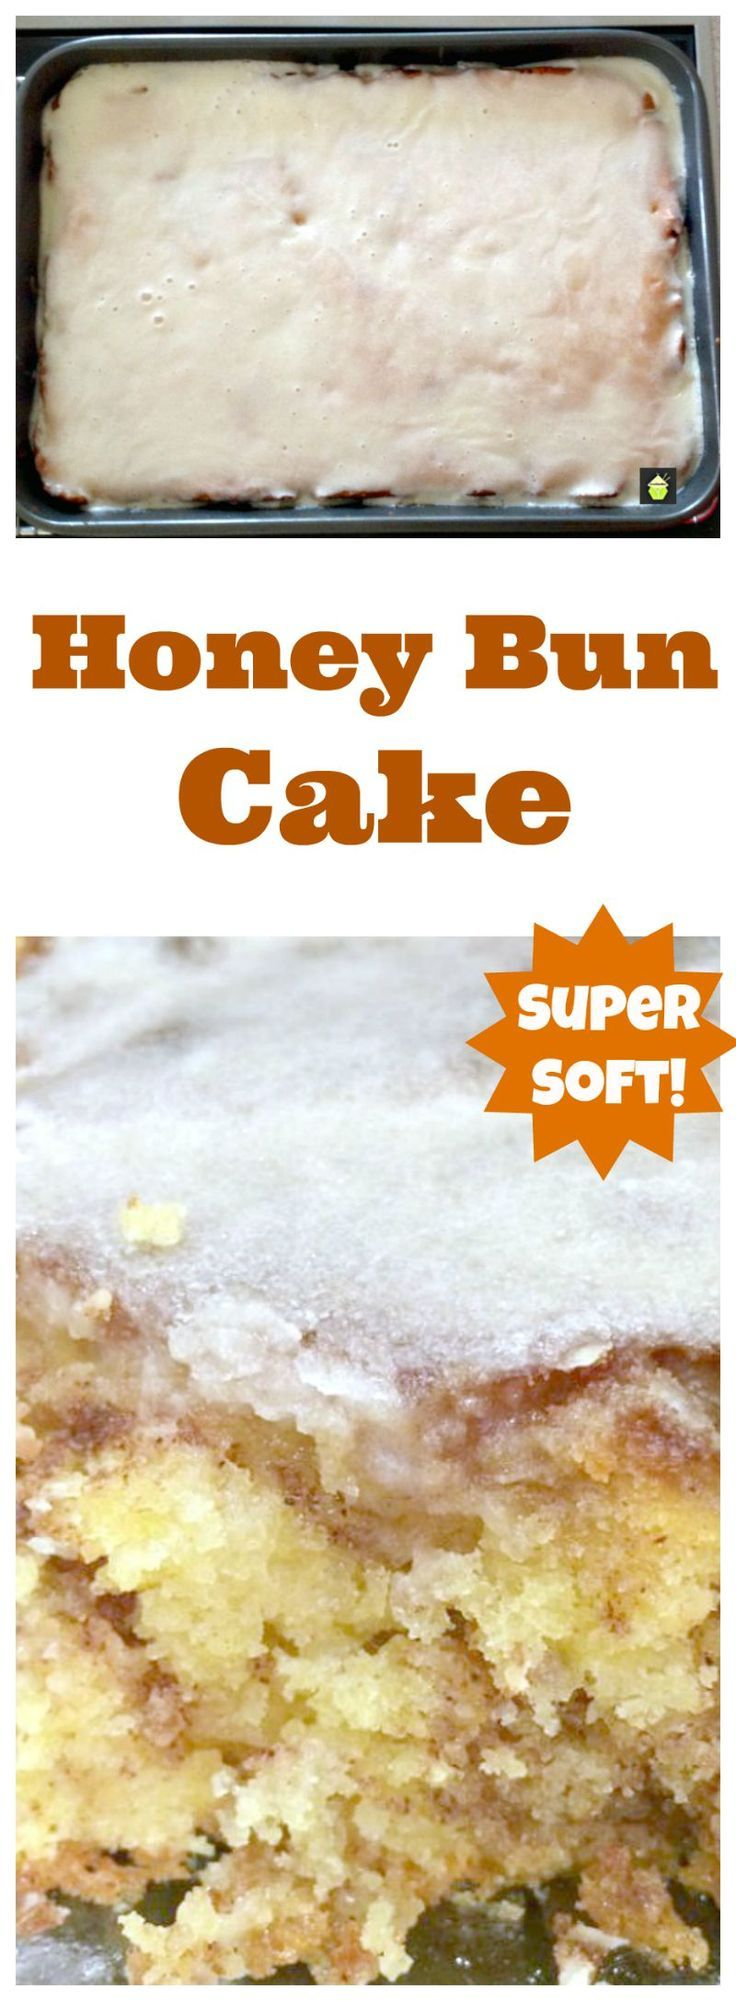 Honey Bun Cake! This is a delicious, moist cinnamon and brown sugar cake, and always popular with the family! #brownsugar